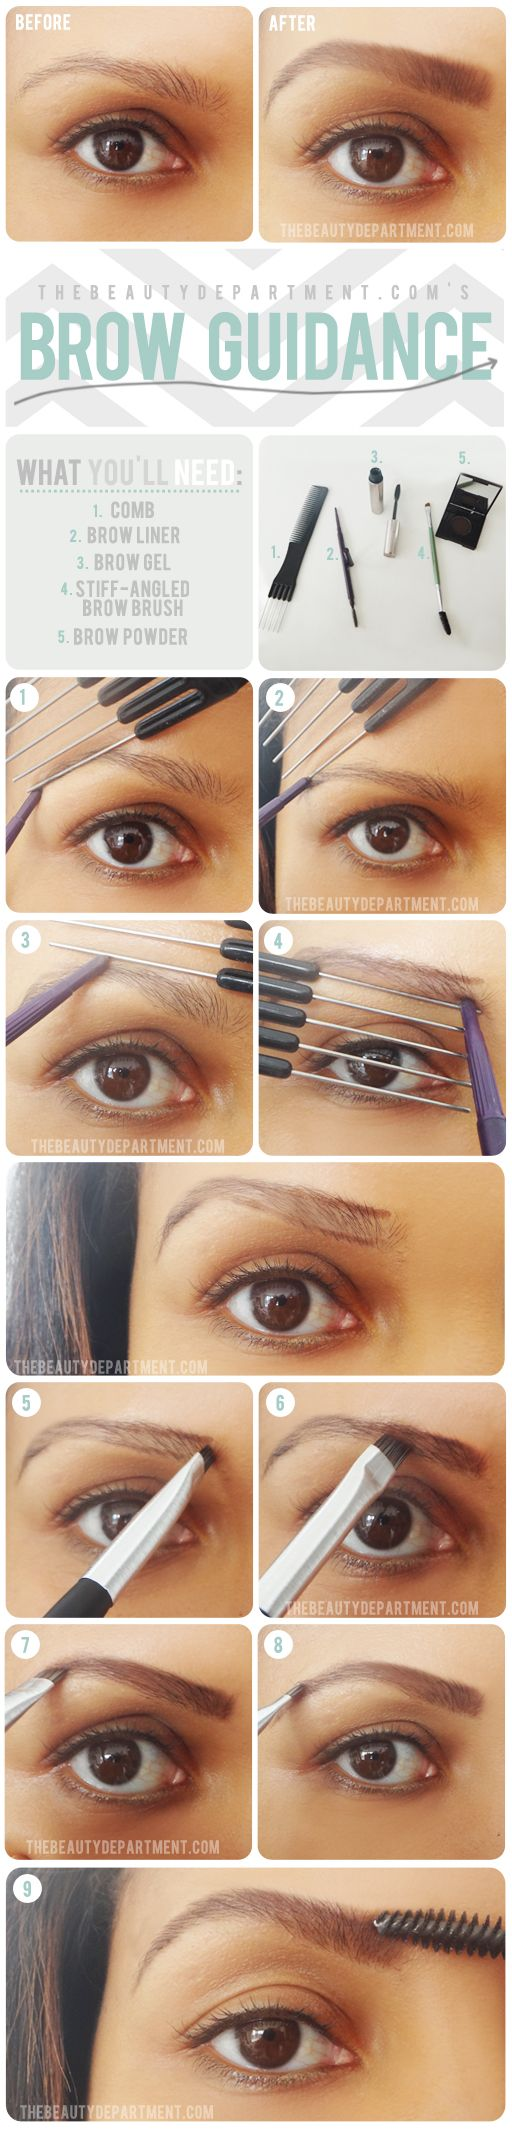 Help for brows! Grab a straight edge, outline the perimeter + shade it in!